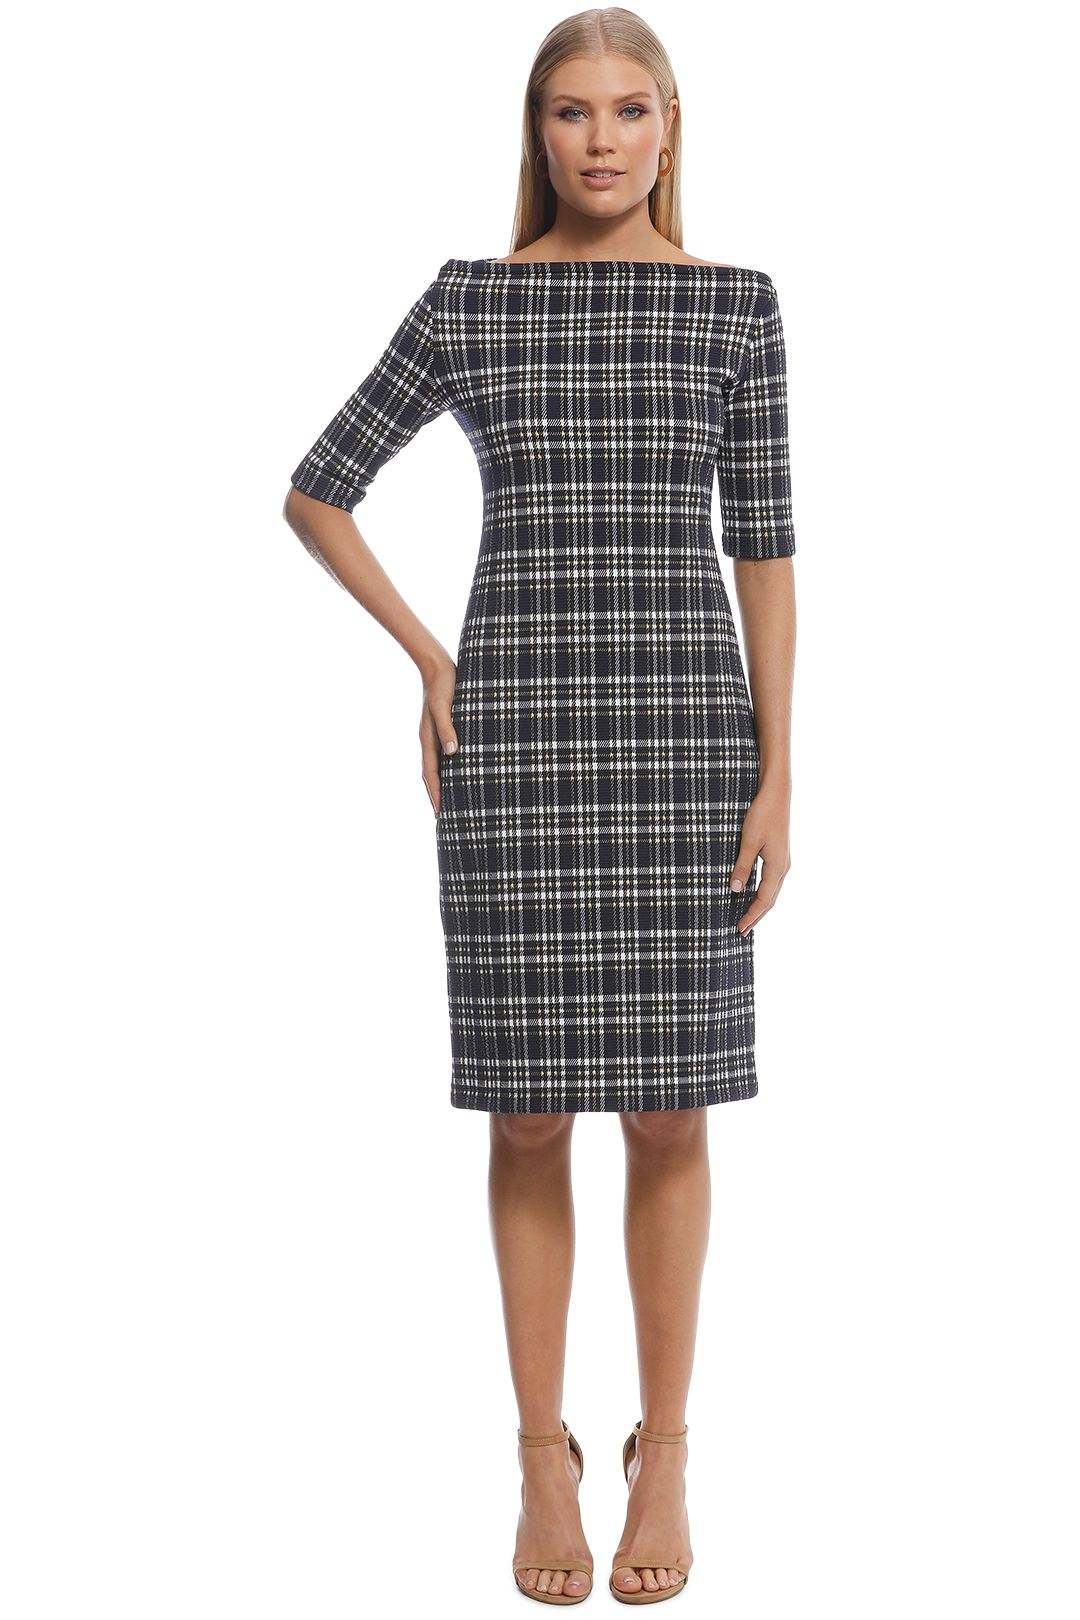 Scanlan Theodore - Plaid Boat Neck Dress - Navy Yellow - Front